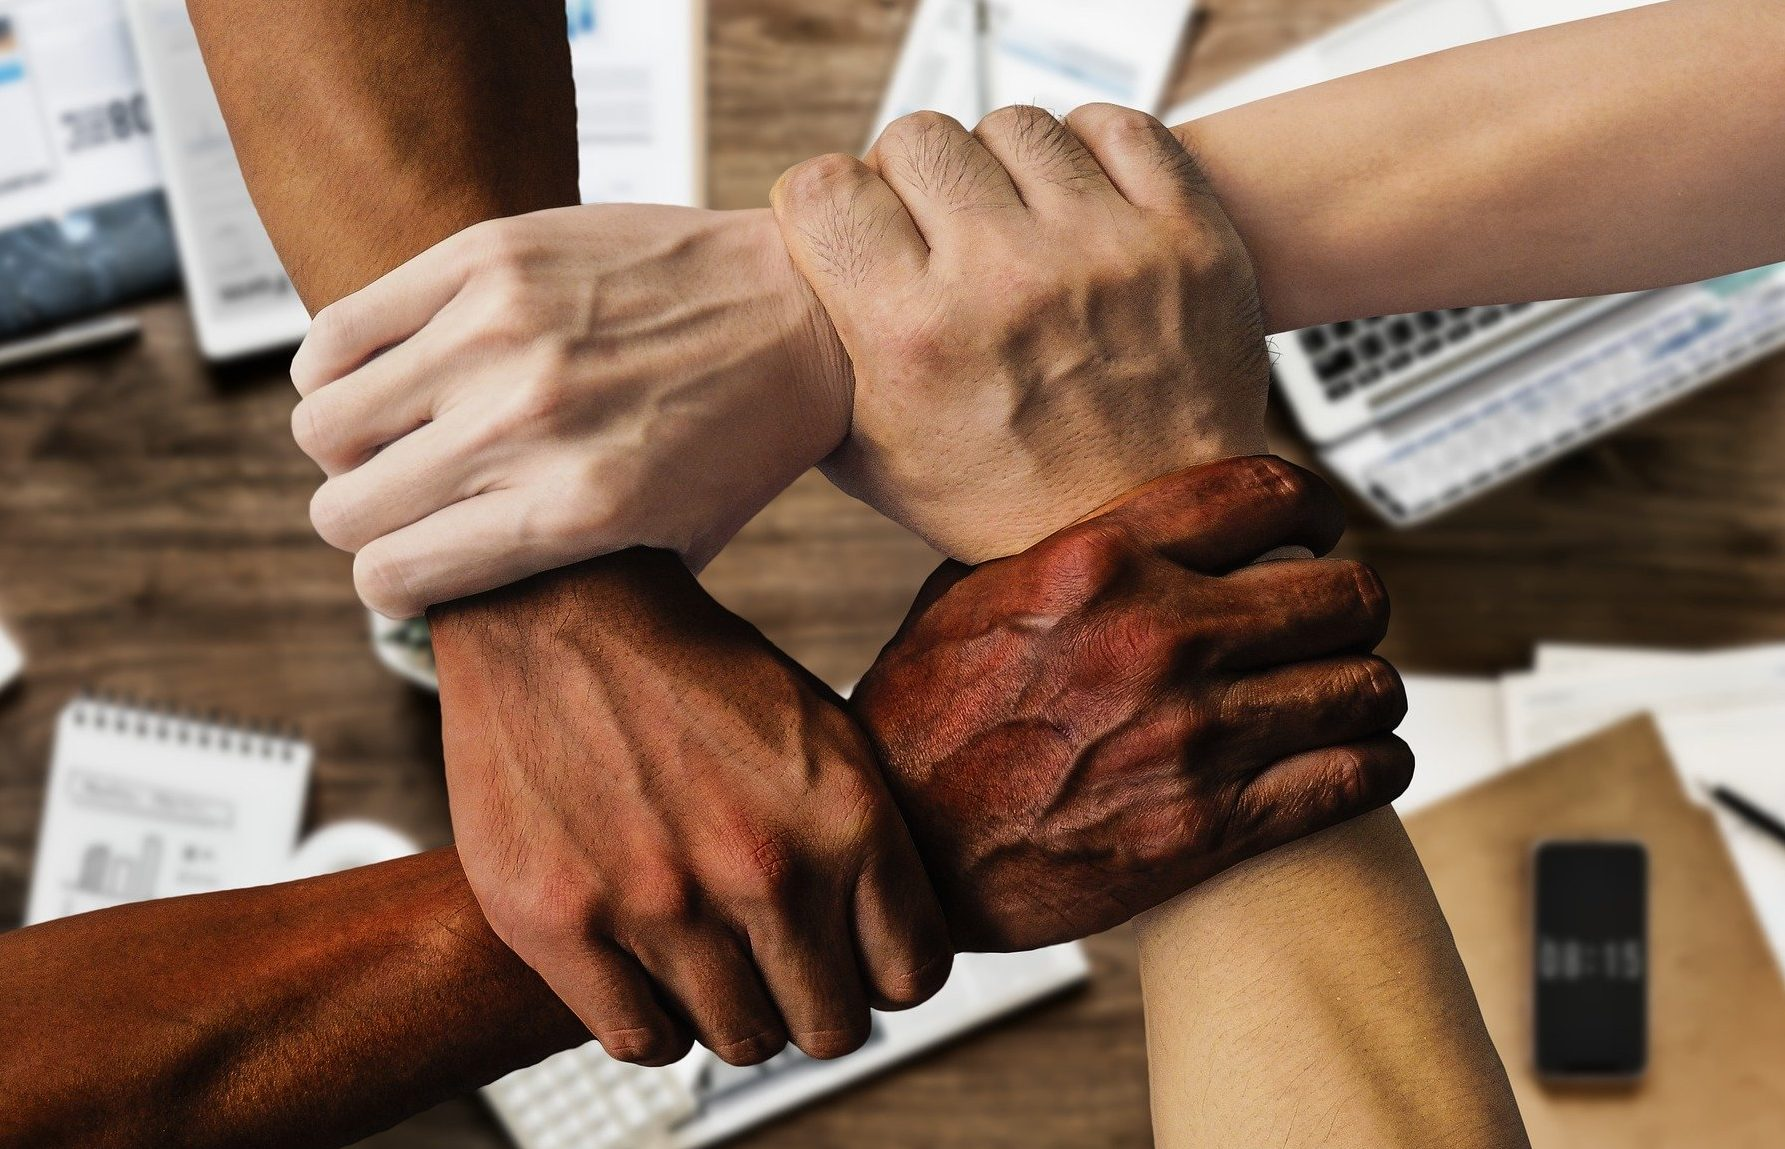 People of various racial background supporting each other.